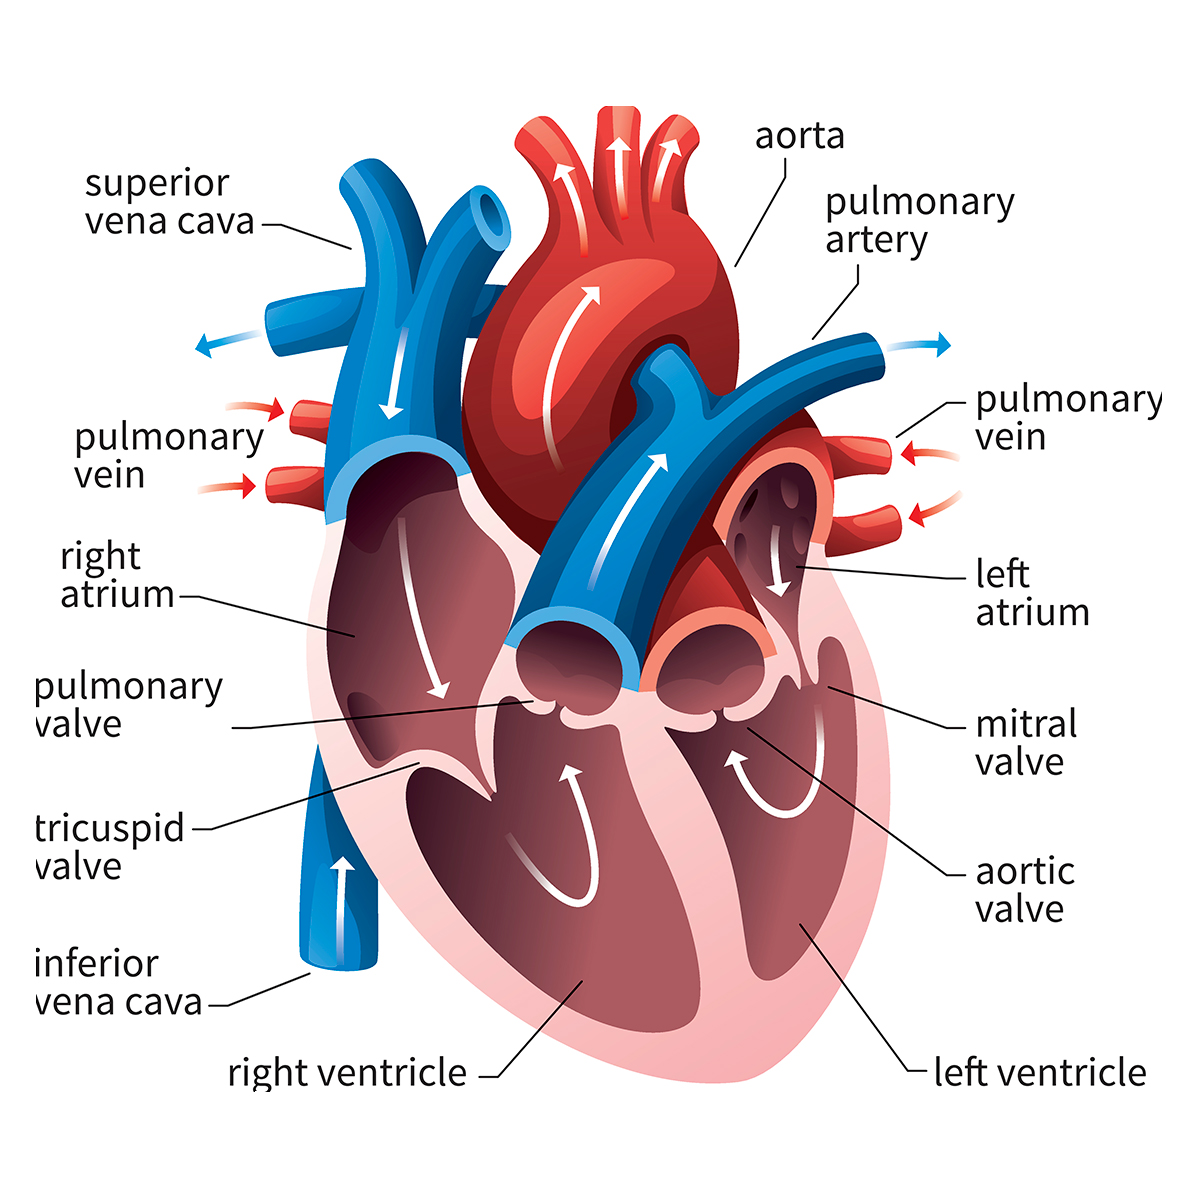 Queensland Cardiovascular Group | Anatomy of the Heart